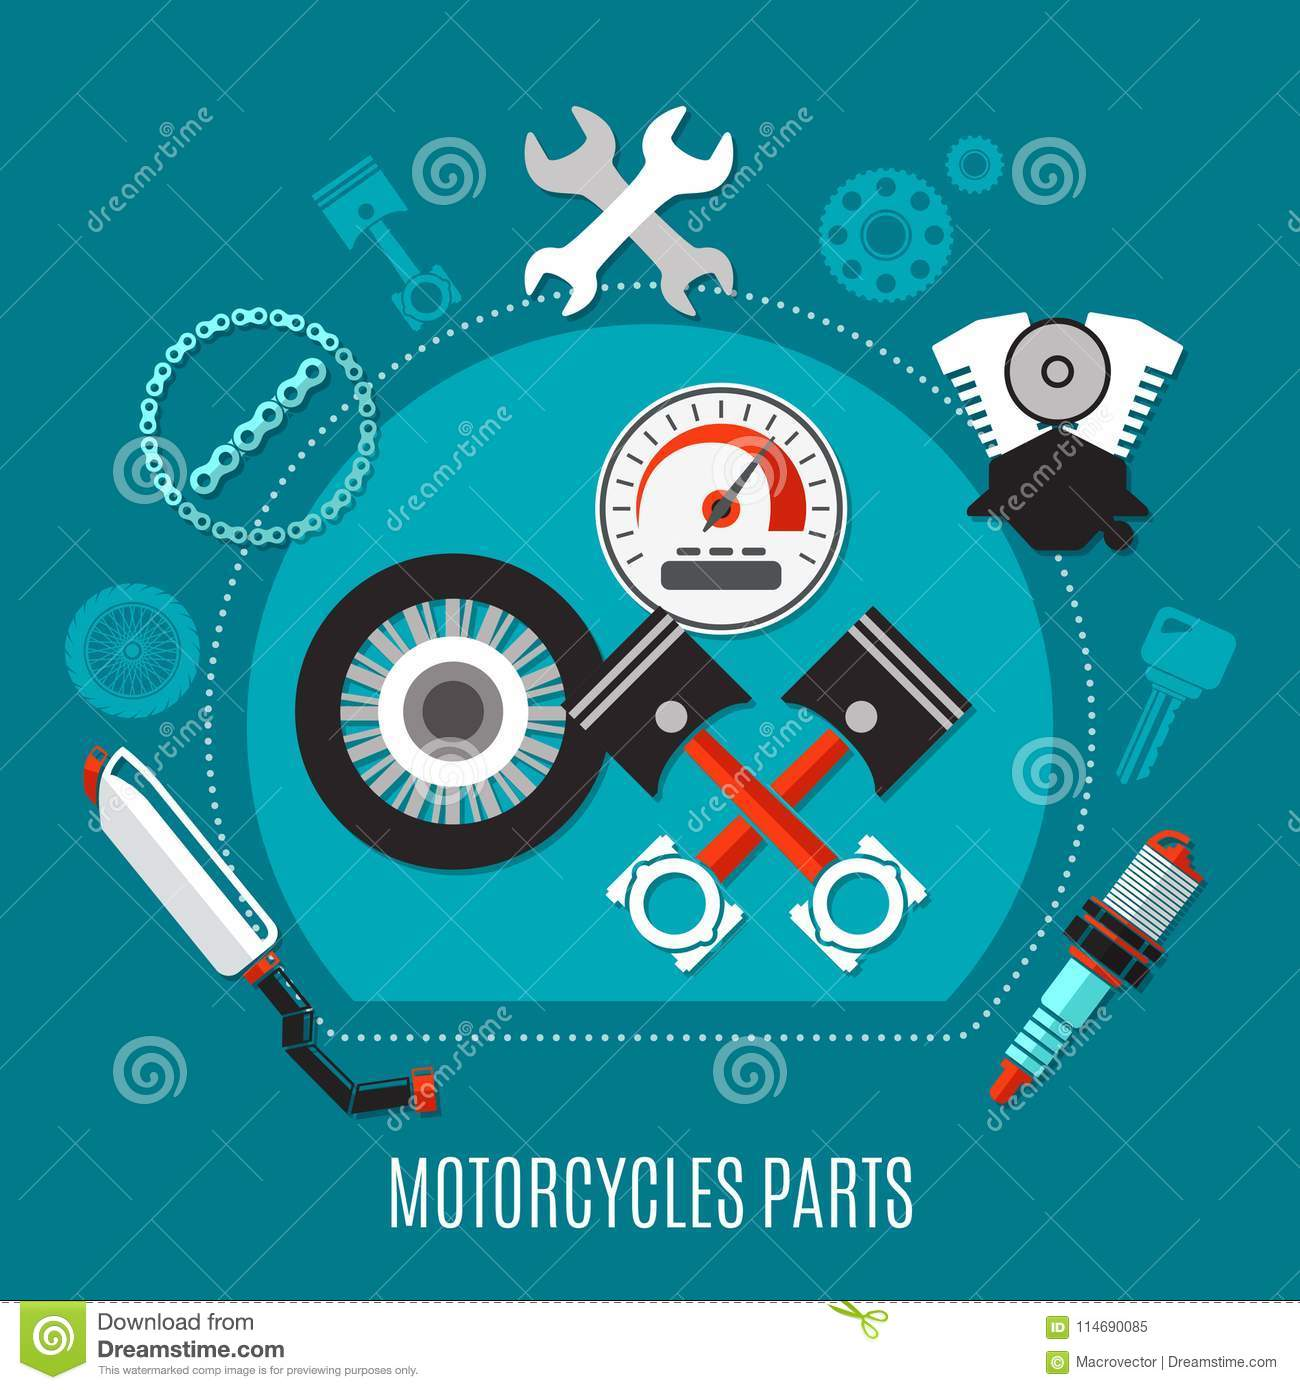 Motorcycles Parts Design Concept Stock Vector Illustration Of Flat Engine Diagram Pistons Schedule With Speedometer Tire Exhaust Muffler Spark Plug Decorative Icons